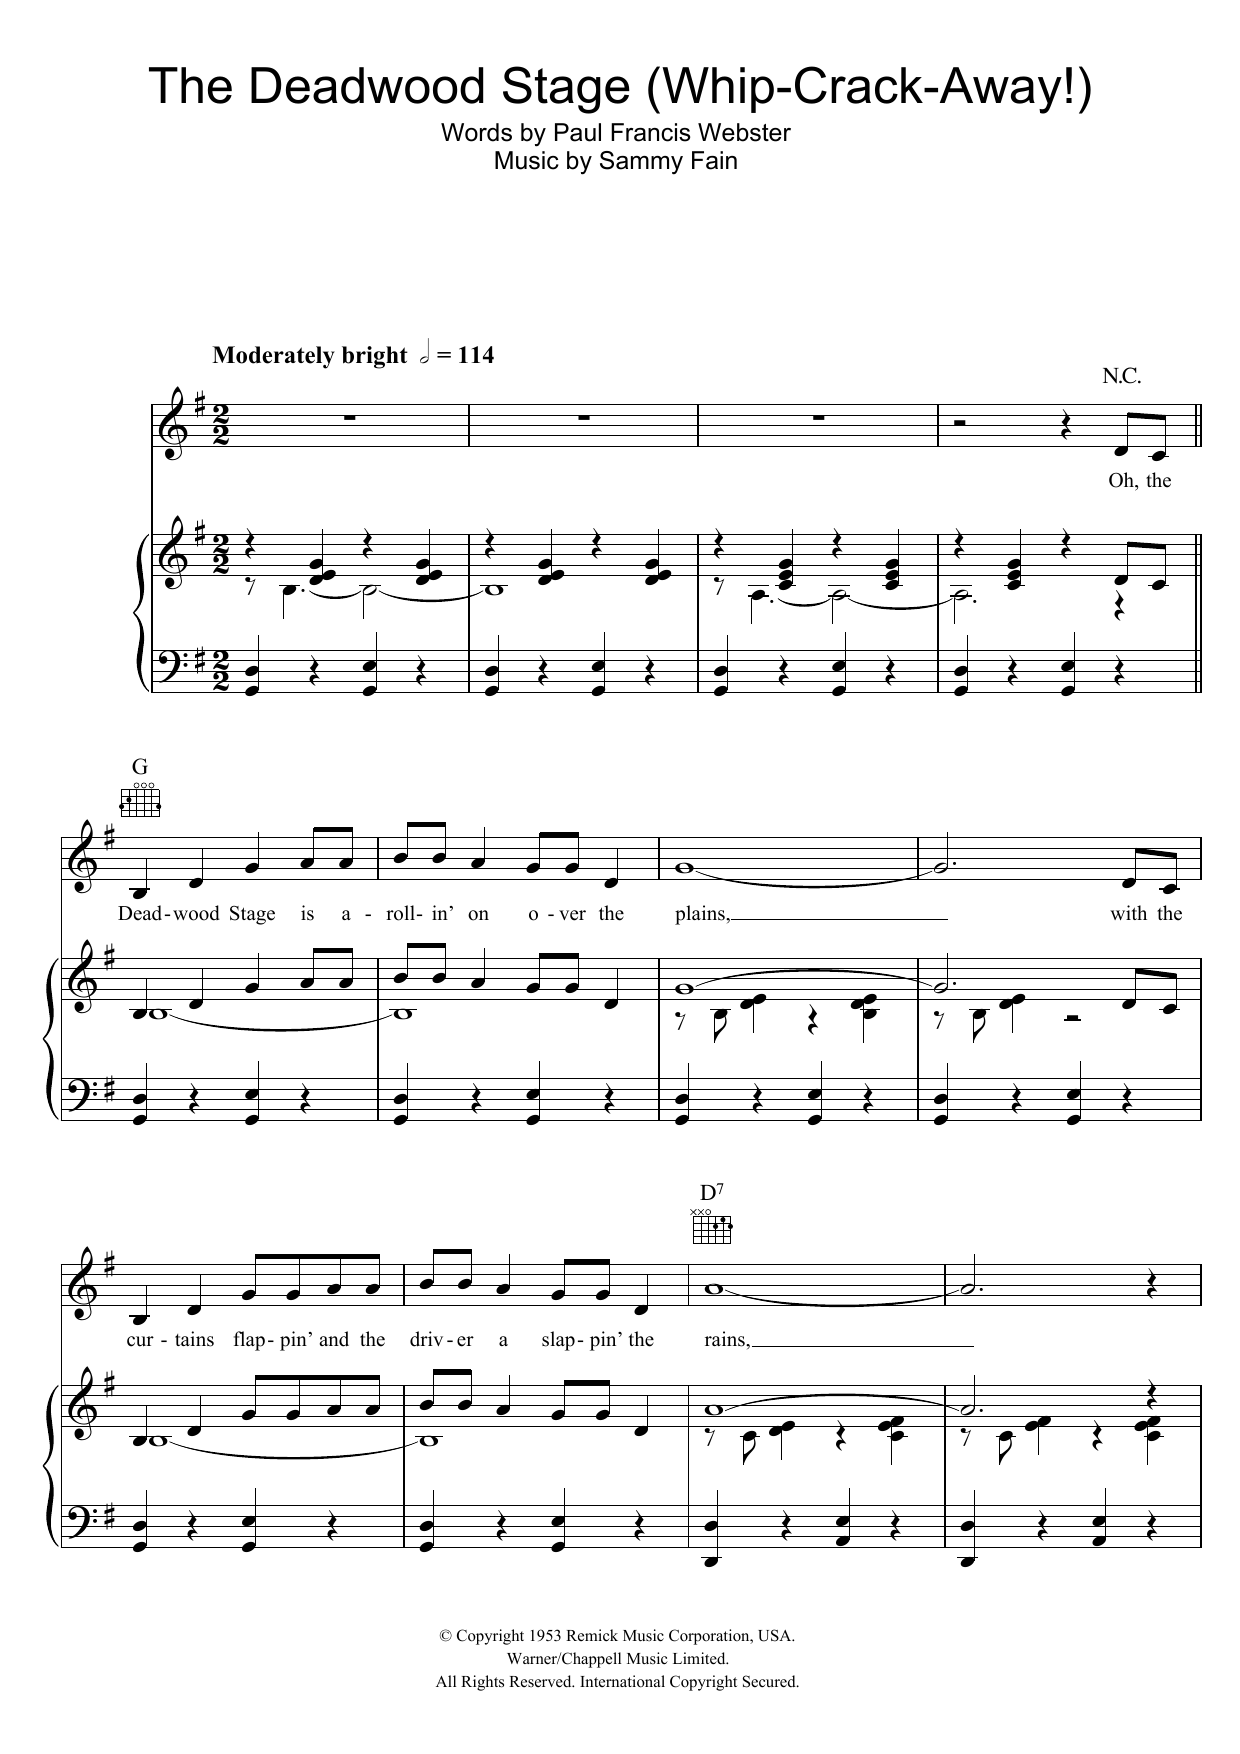 Download Doris Day The Deadwood Stage (Whip-Crack-Away) sheet music and printable PDF score & Easy Listening music notes